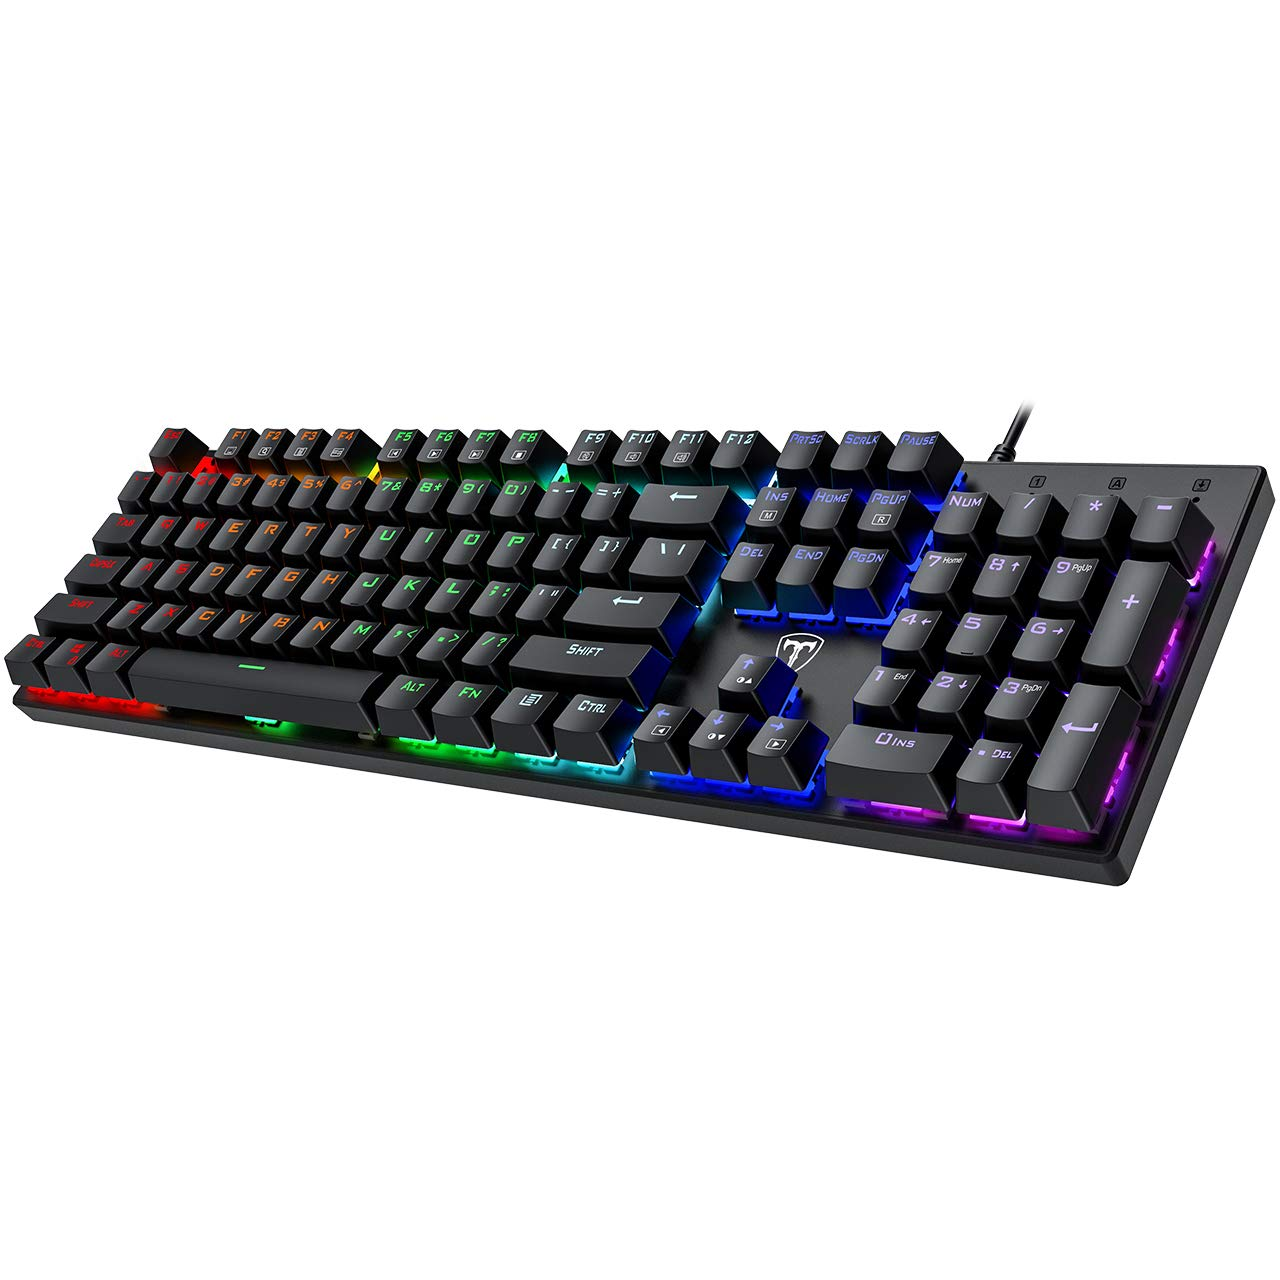 PICTEK Full Size Mechanical Gaming Keyboard, Rainbow Backlit Ultra-Slim Wired USB Keyboard with Blue Switches Double-Shot Keycaps, Splash-Proof, Full-Key Rollover, Ideal for Windows Mac Gaming